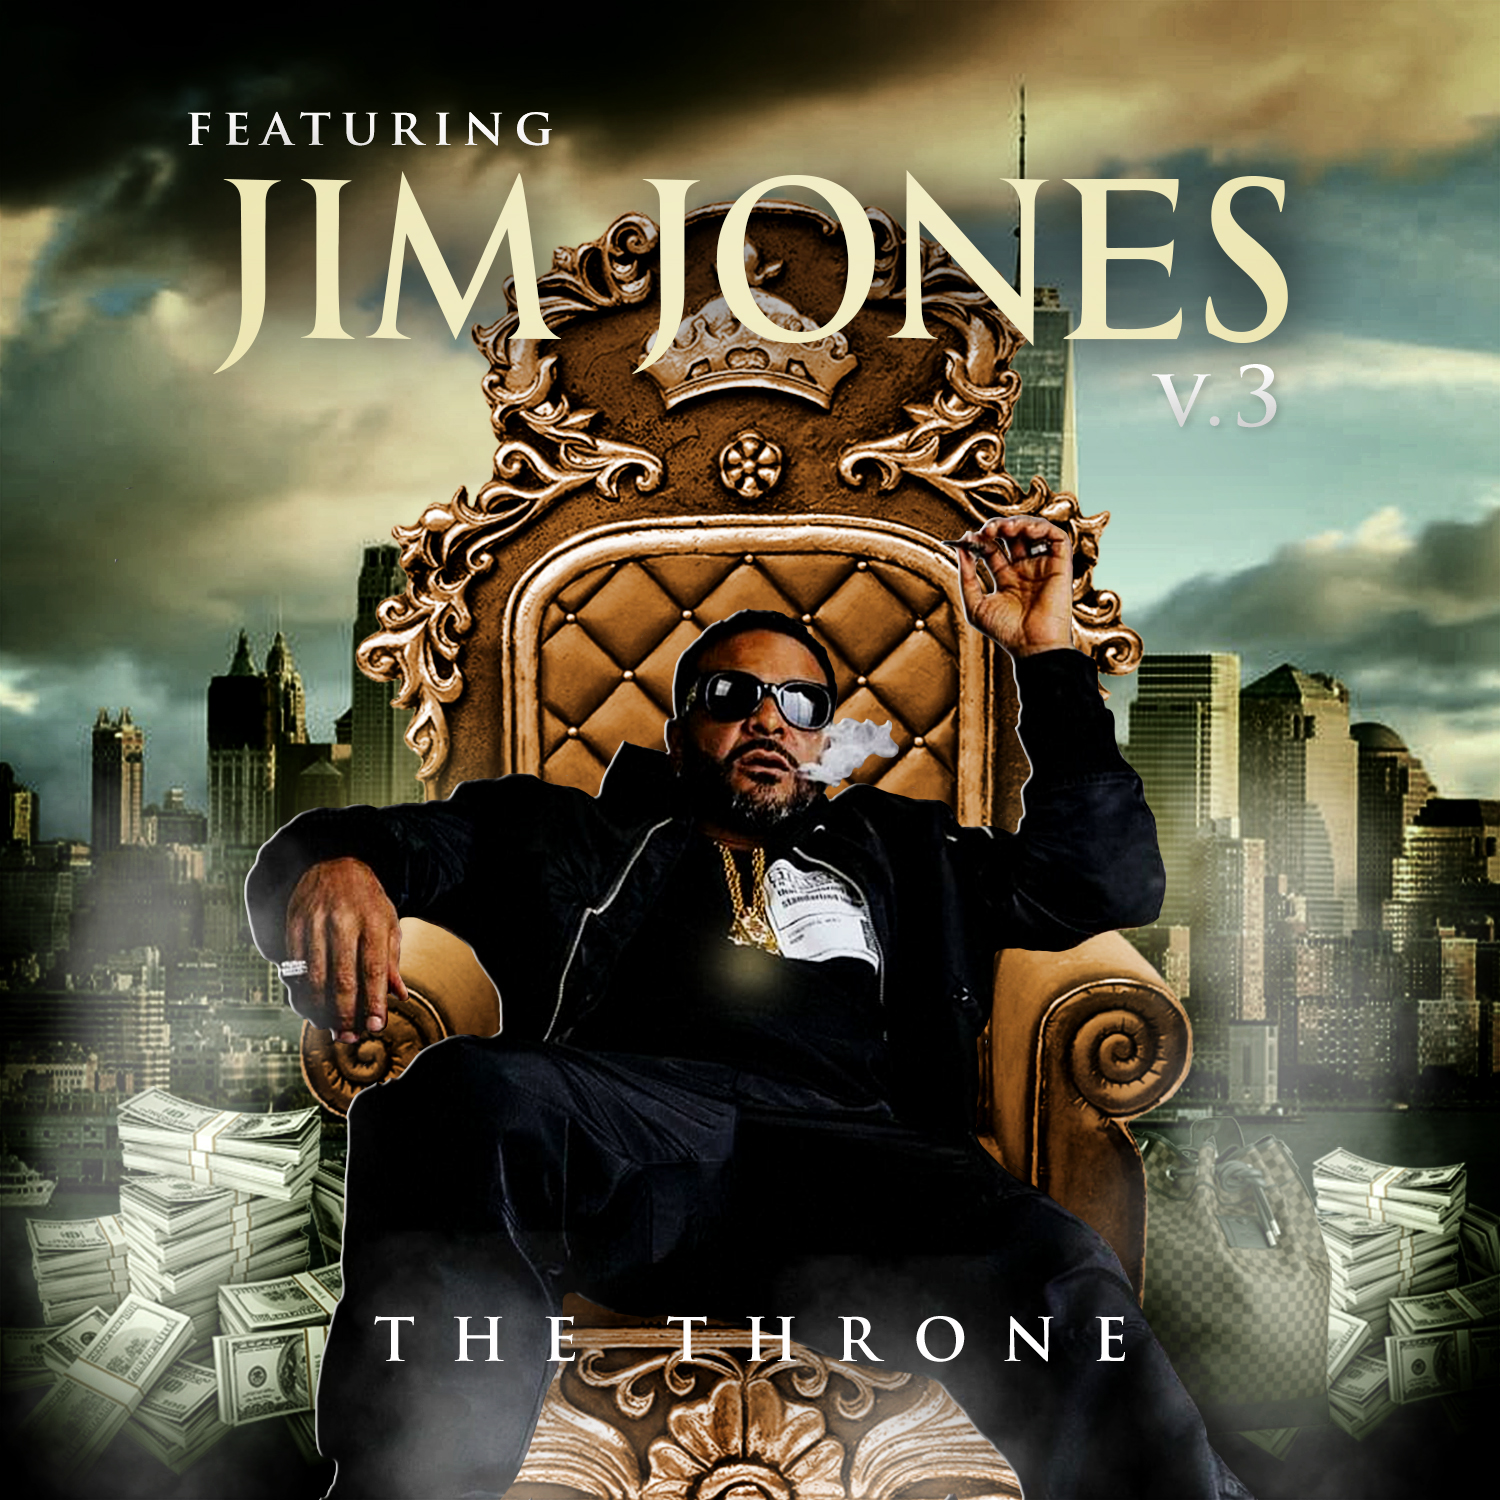 Featuring Jim Jones v3